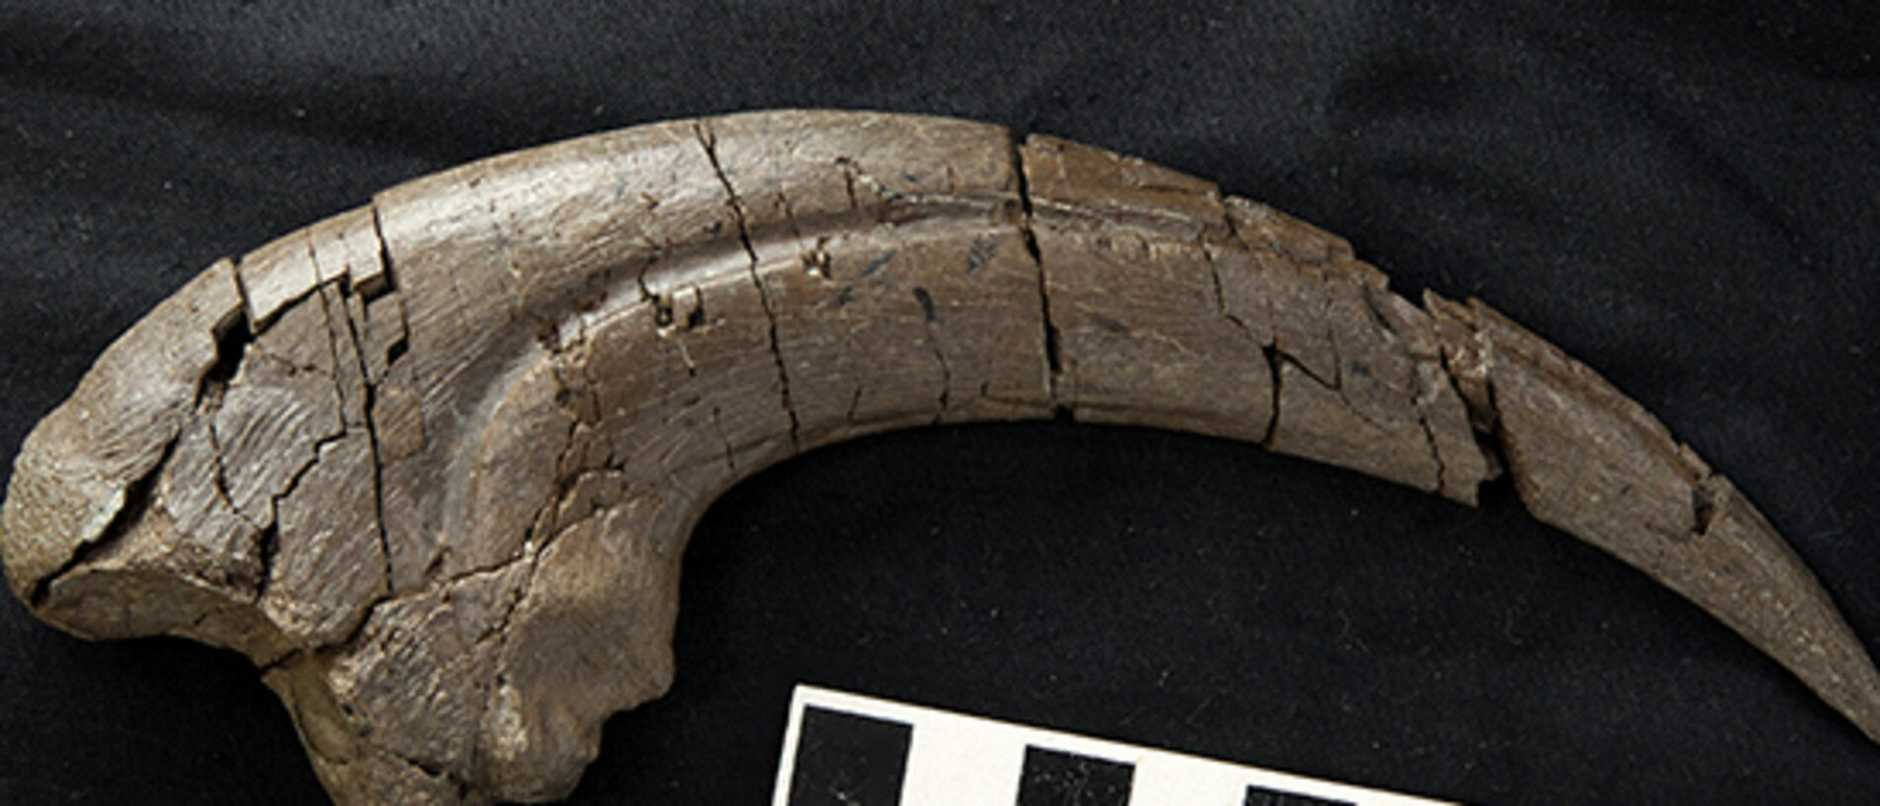 The bones we have found there in the last decade have been some of the best.